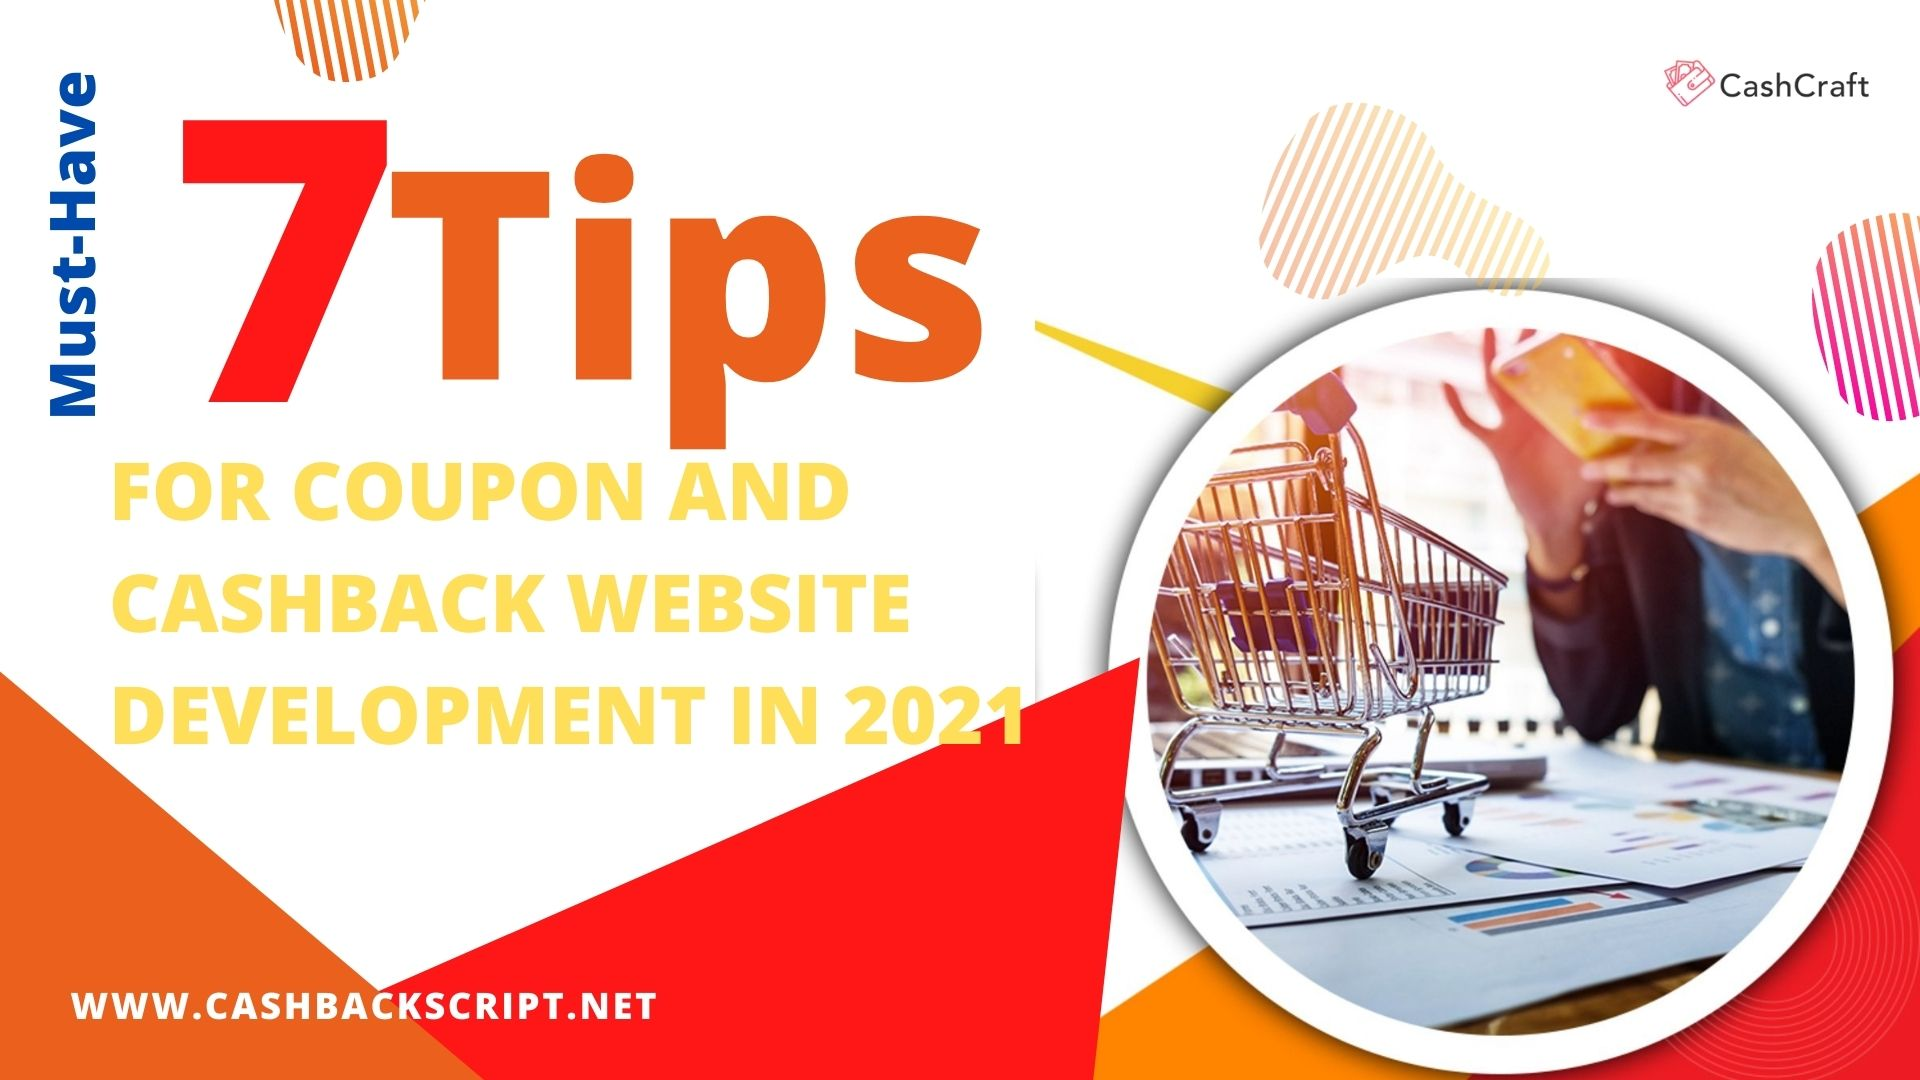 7 Tips to Develop Cashback and Coupon Website In 2021